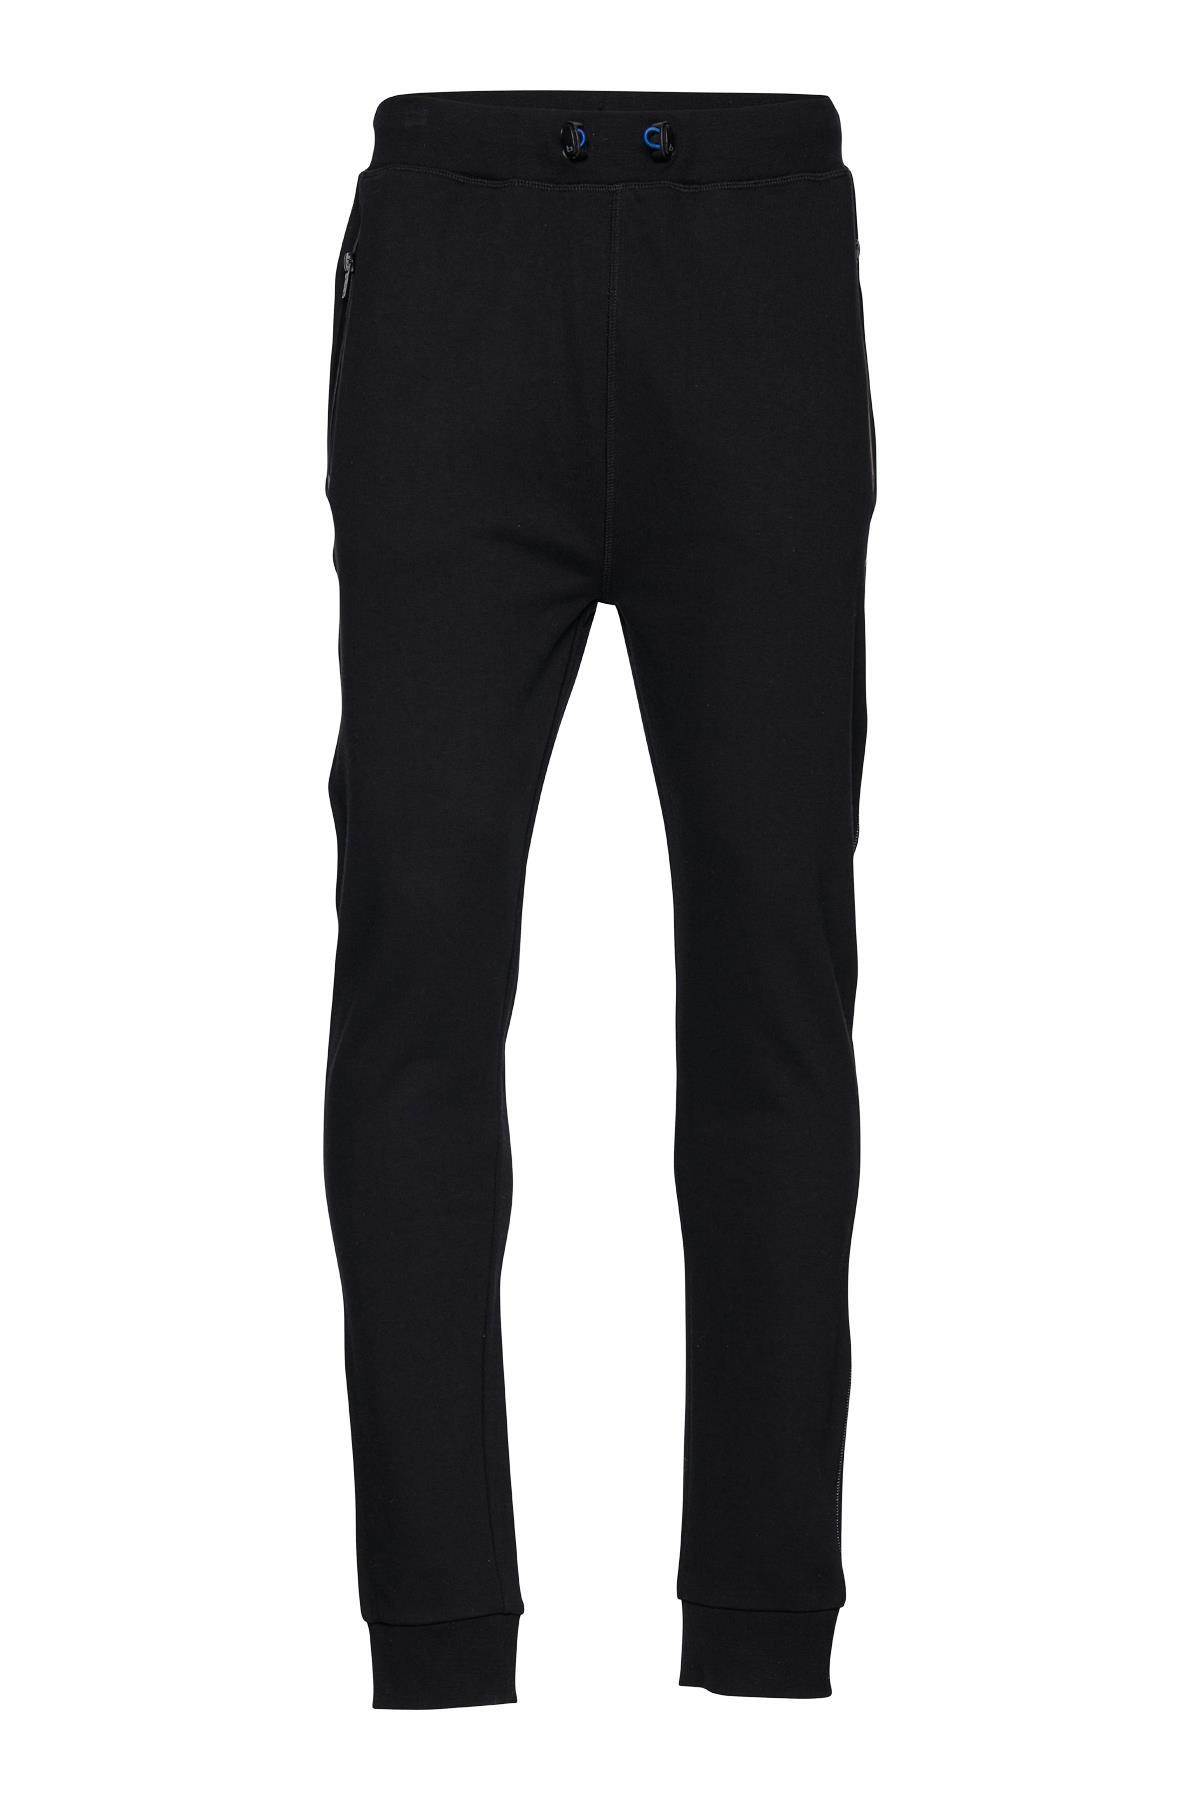 Black Pants Casual – Køb Black Pants Casual fra str. M-XXL her